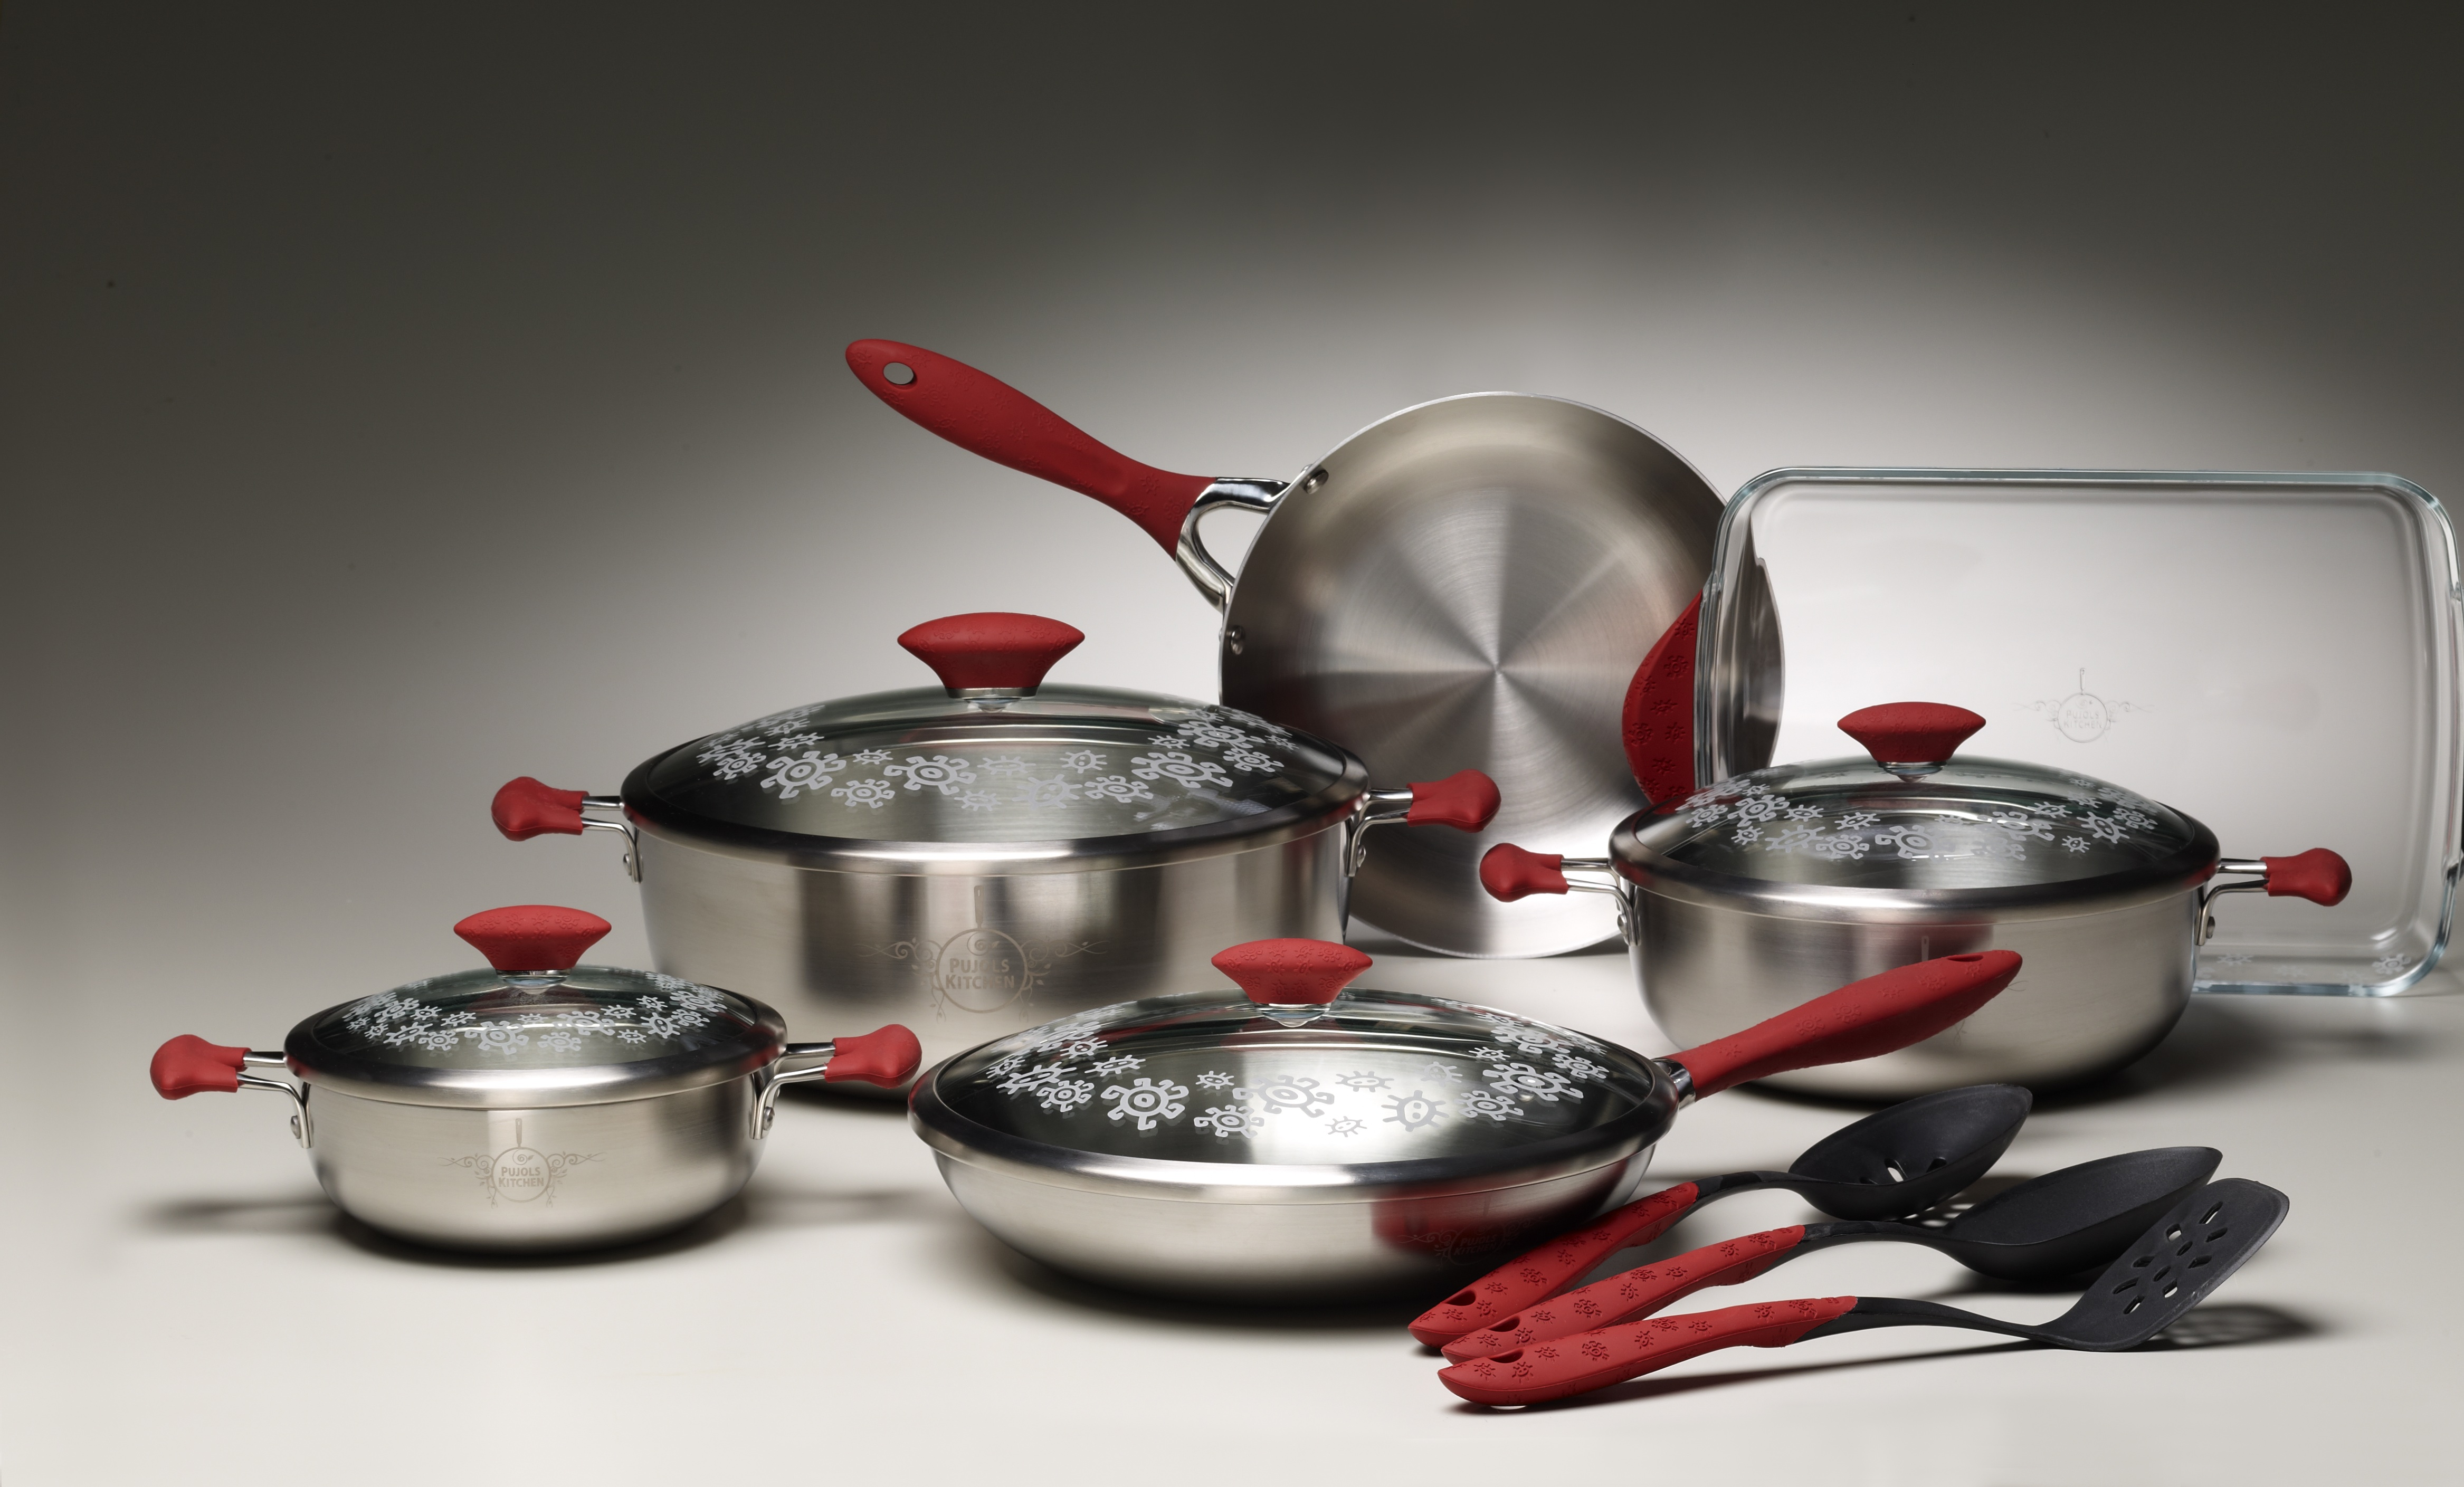 Kitchen Cook Ware ~ Introducing pujols kitchen cookware an innovative line of